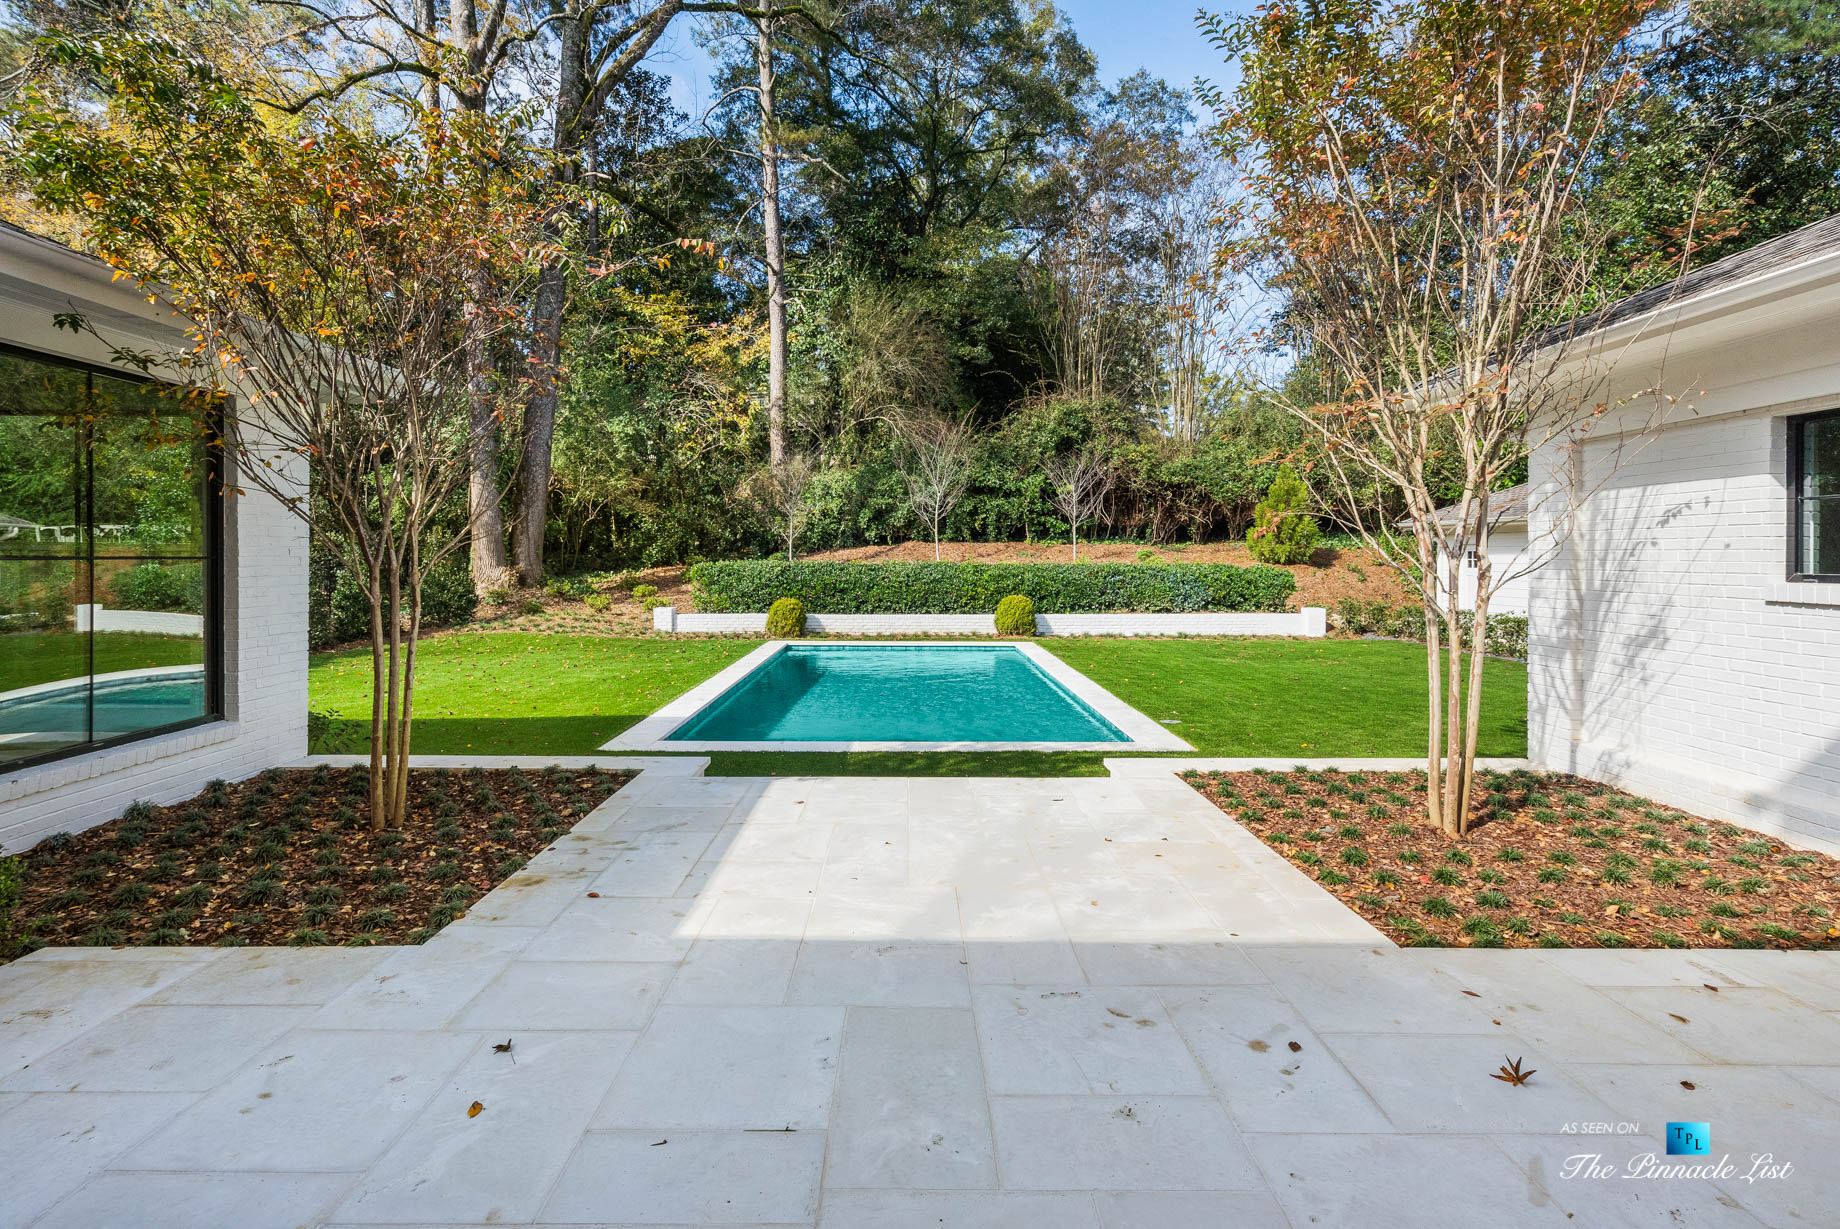 447 Valley Rd NW, Atlanta, GA, USA – Back Yard Pool – Luxury Real Estate – Tuxedo Park Home